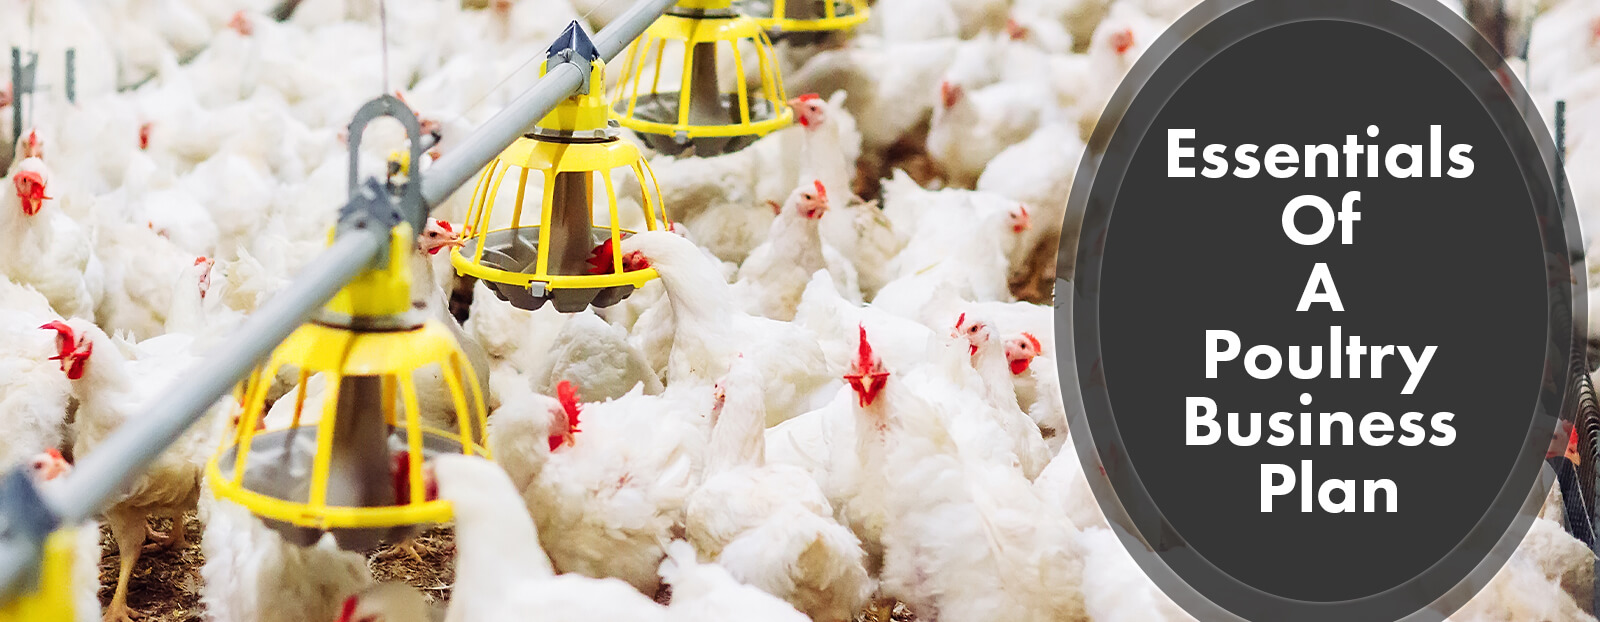 Essentials Of A Poultry Farming Business Plan